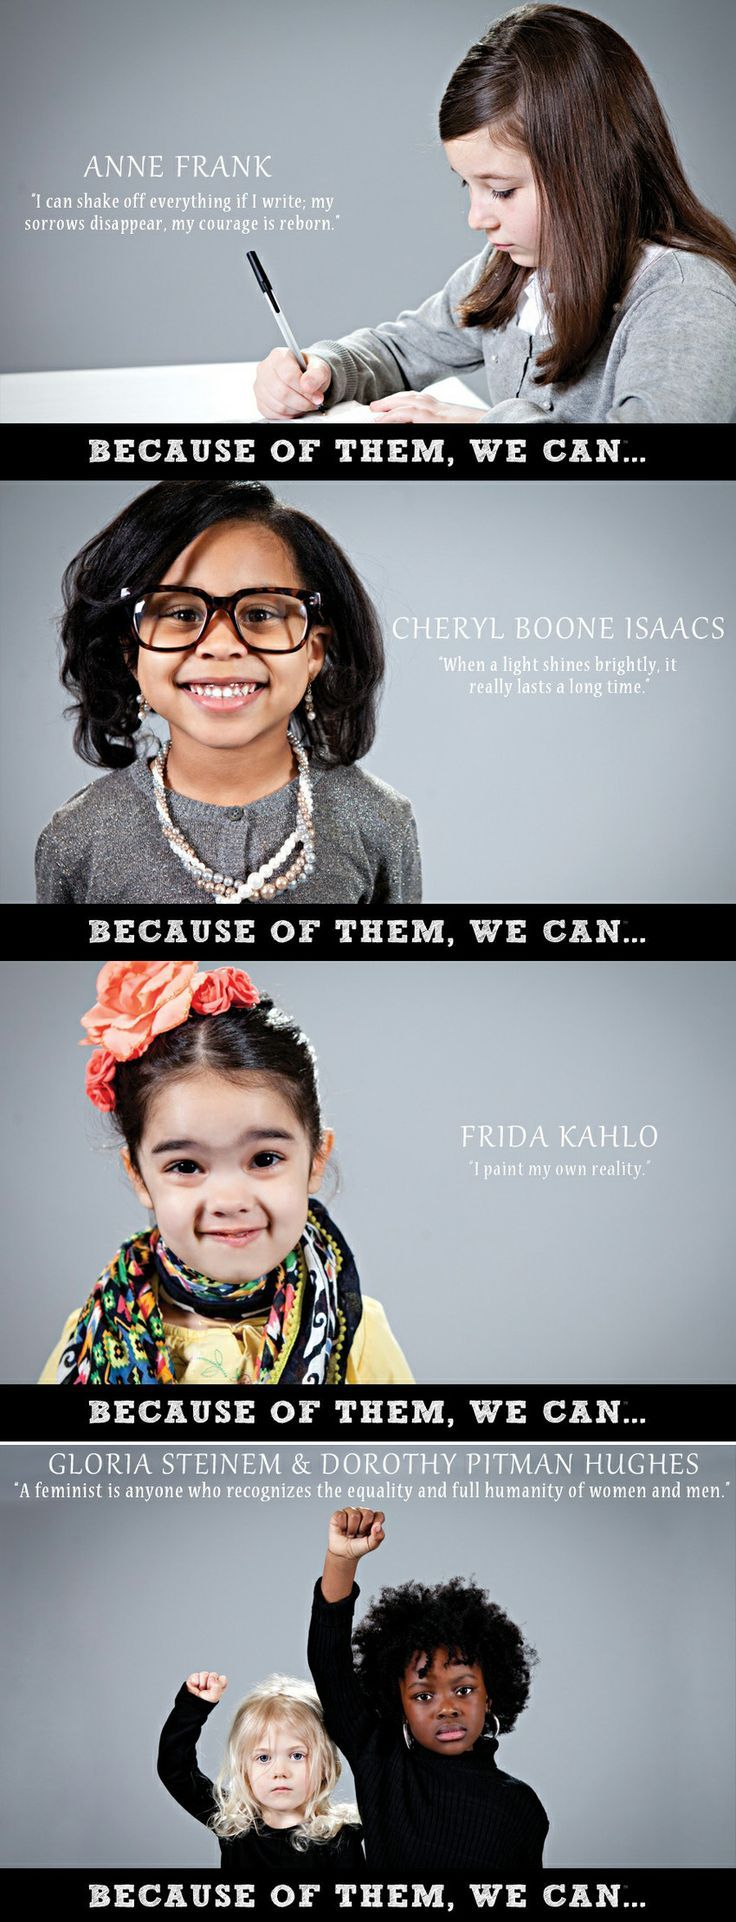 Strong little girls grow up to be influential women, so it's never too early to get started! They might be small, but with your help they can be mighty!